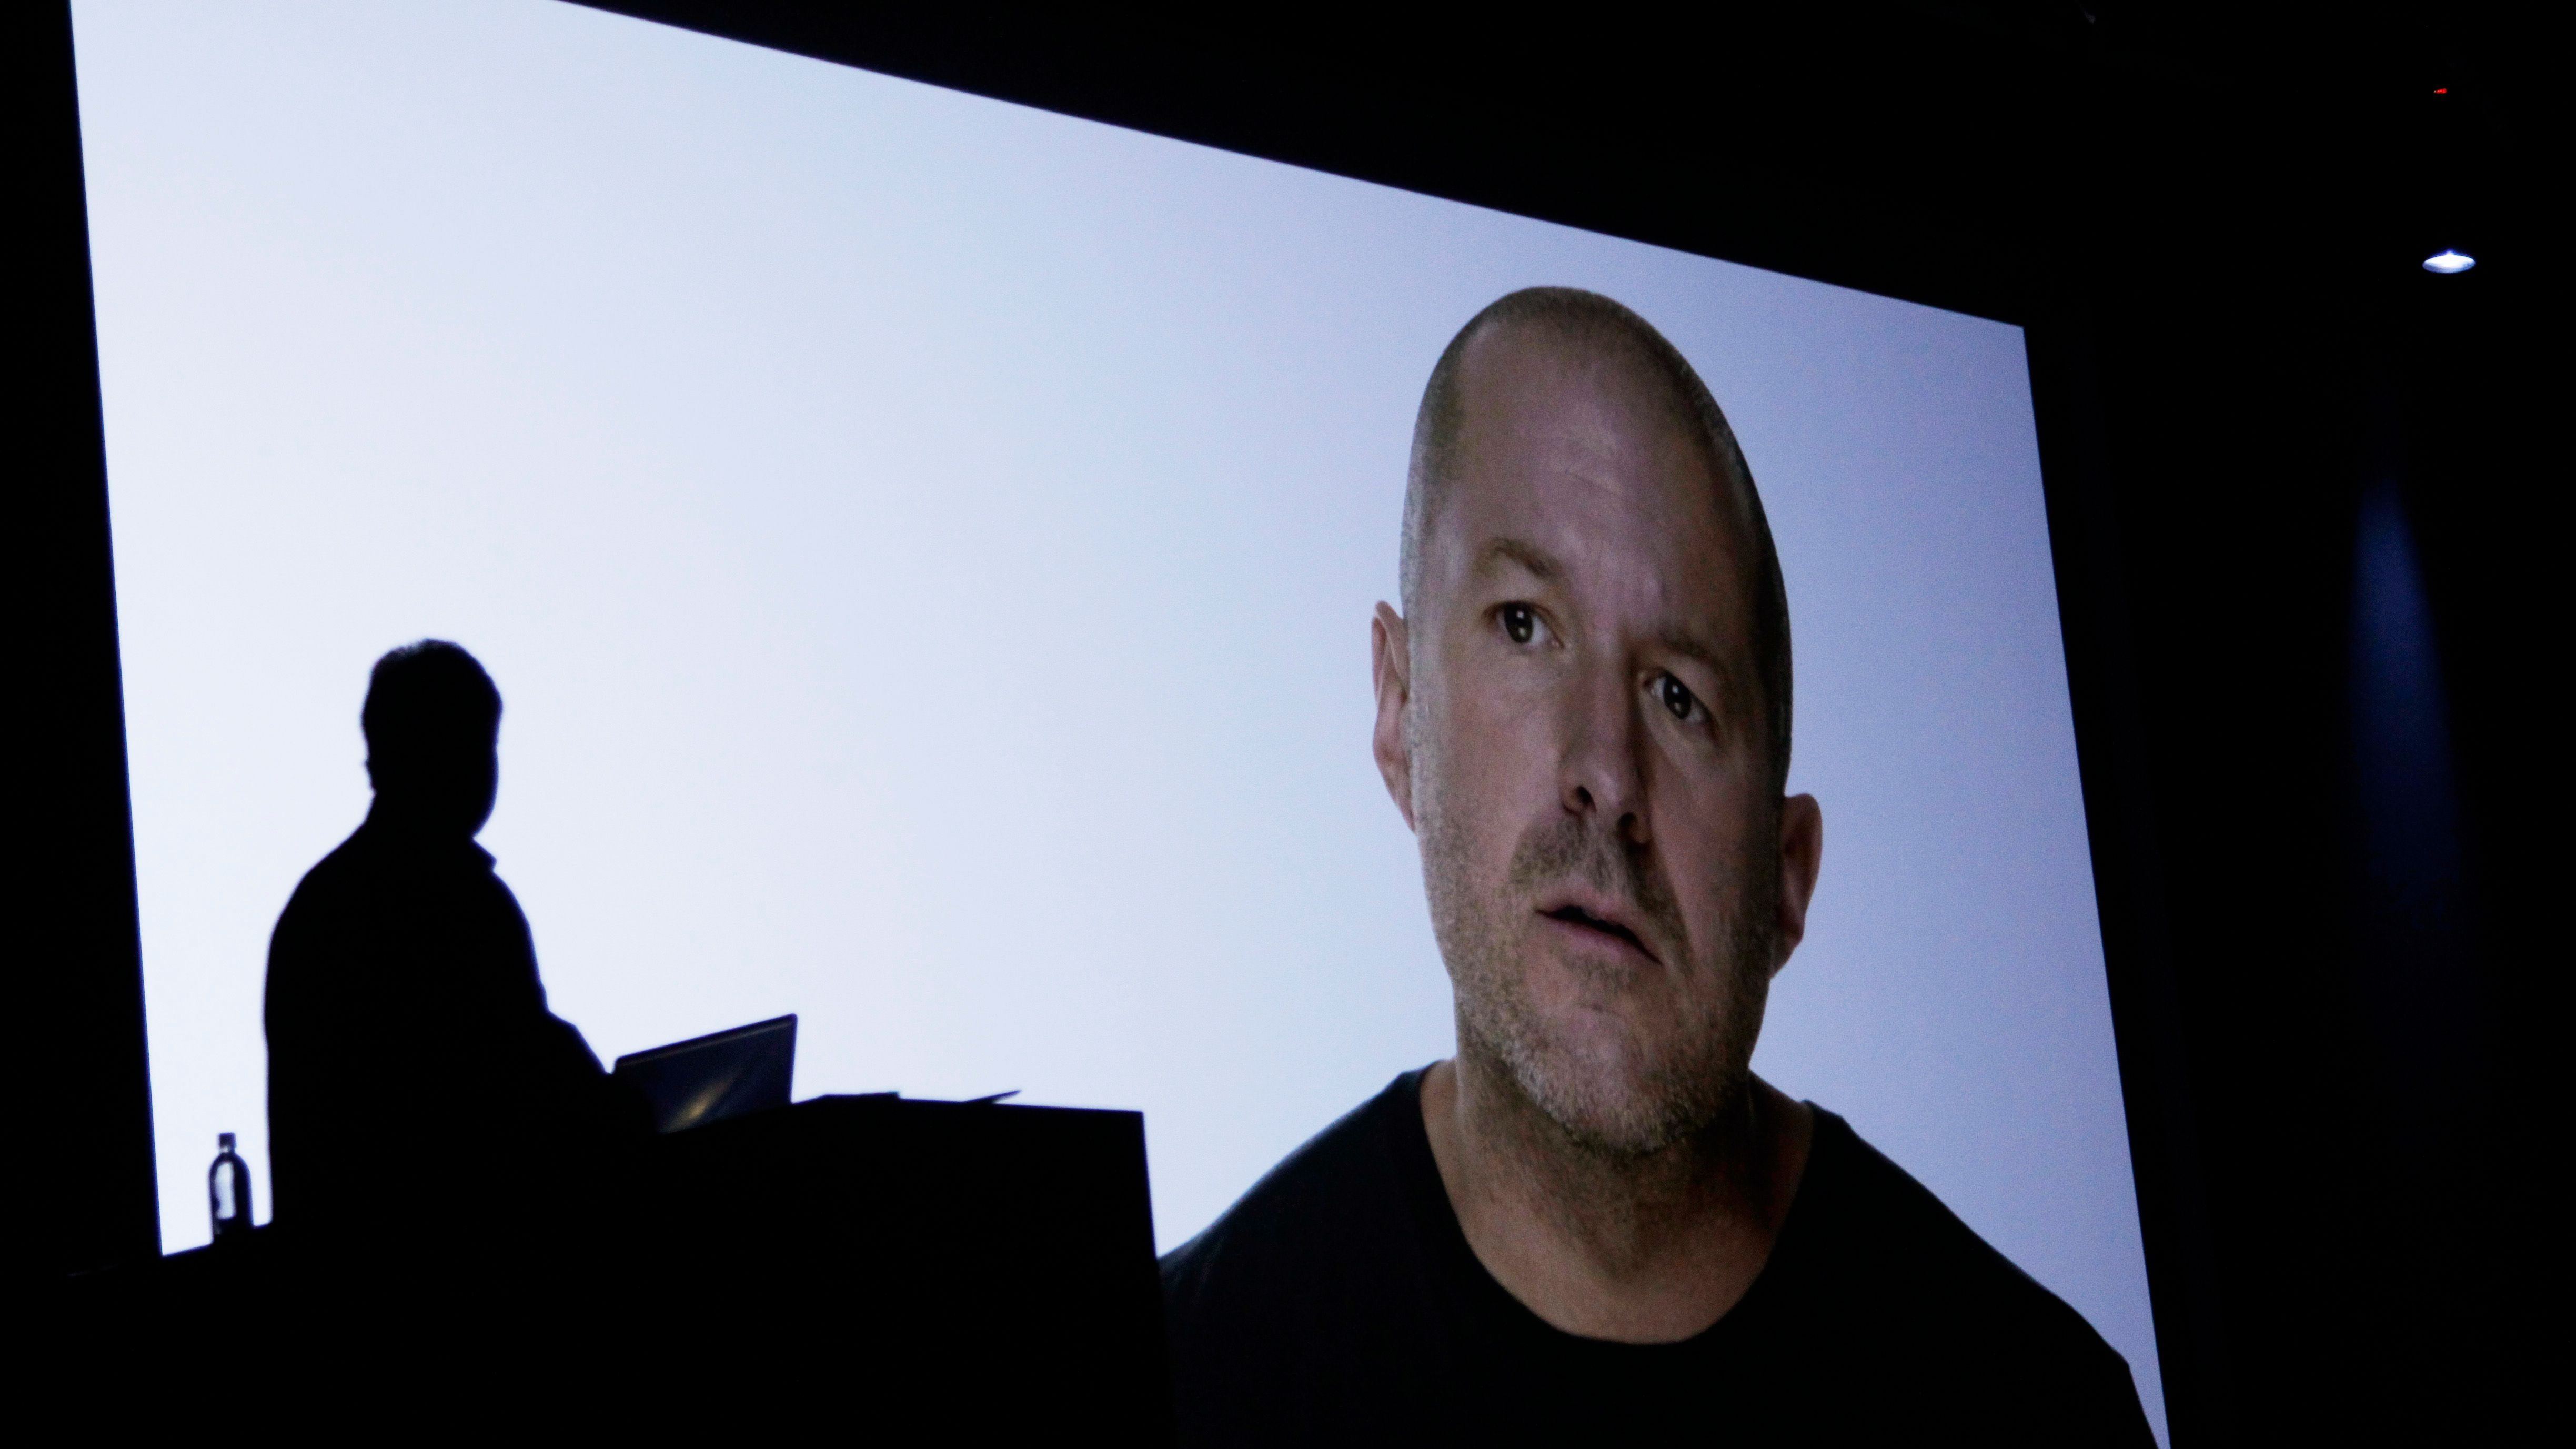 Jony Ive (sort of) opens up about why Apple is so secretive